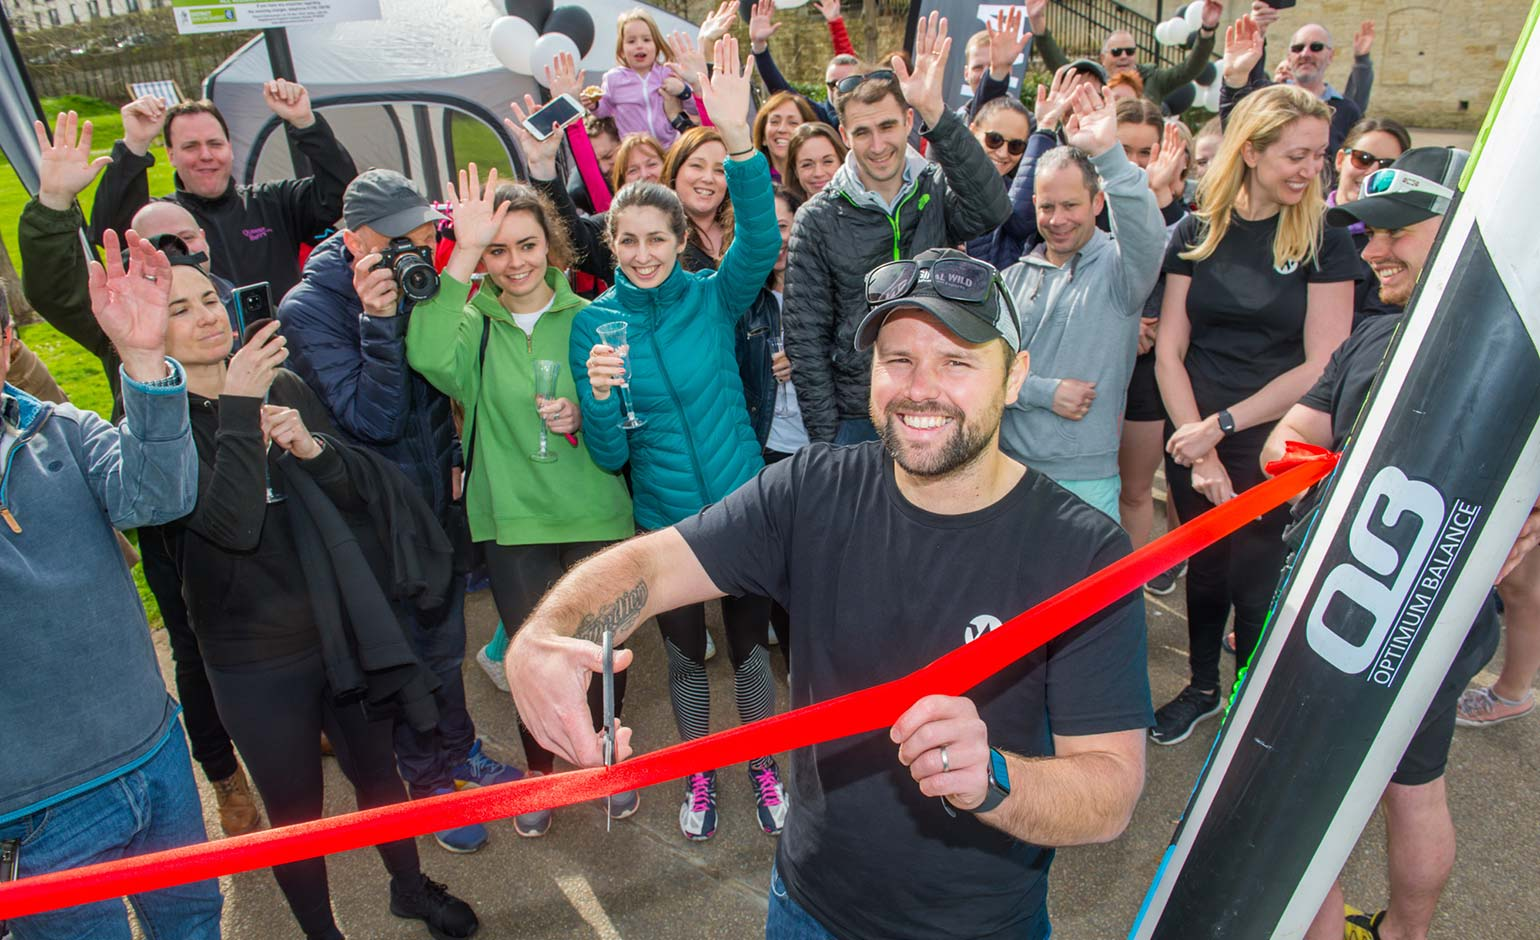 Original Wild paddle boarding venture officially launches at Bath Riverside